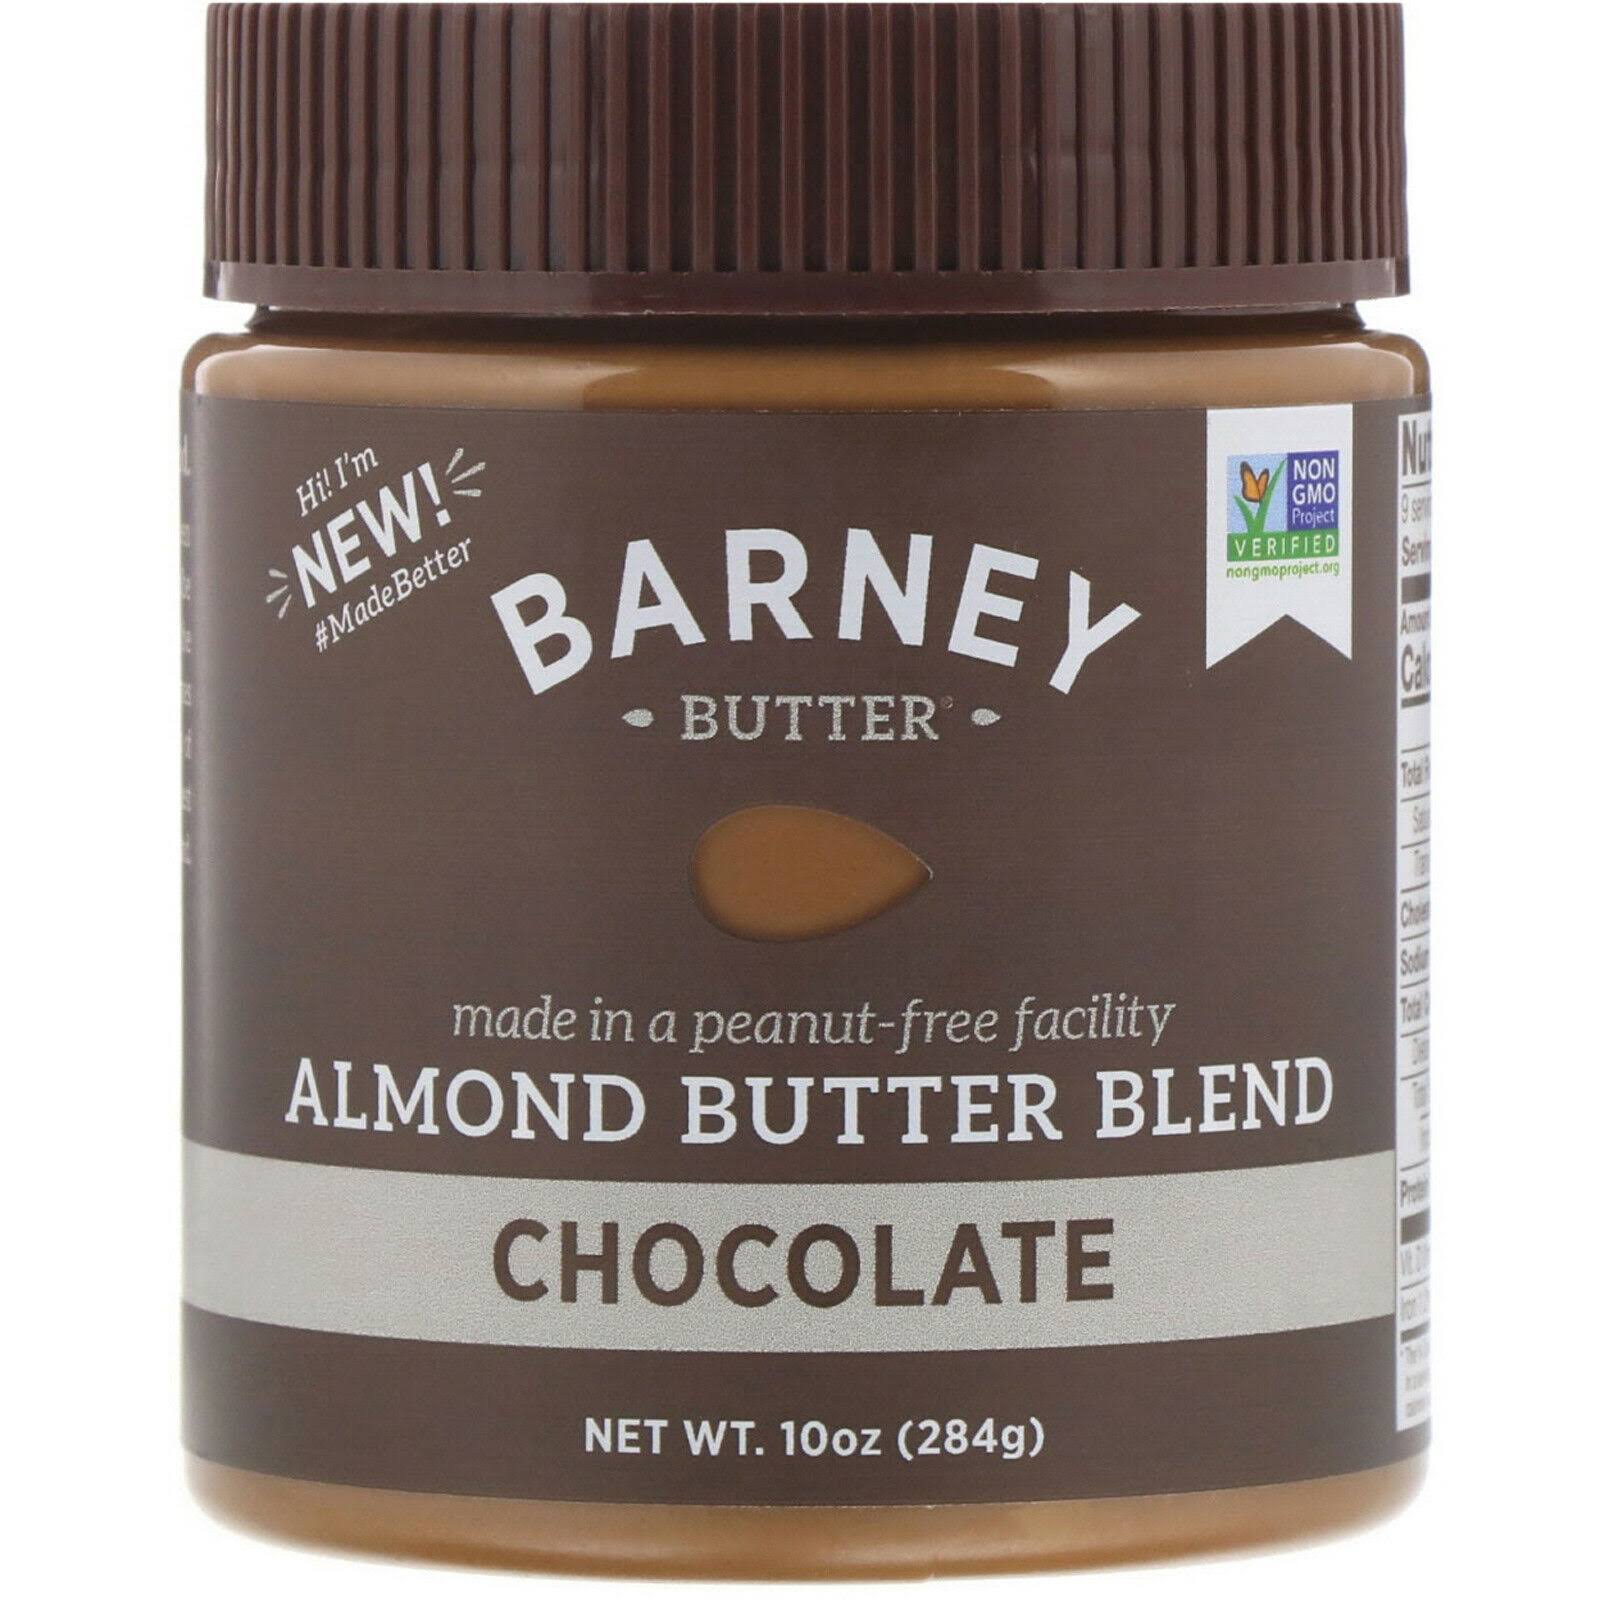 Barney Butter Almond Butter Blend - Chocolate, 10oz